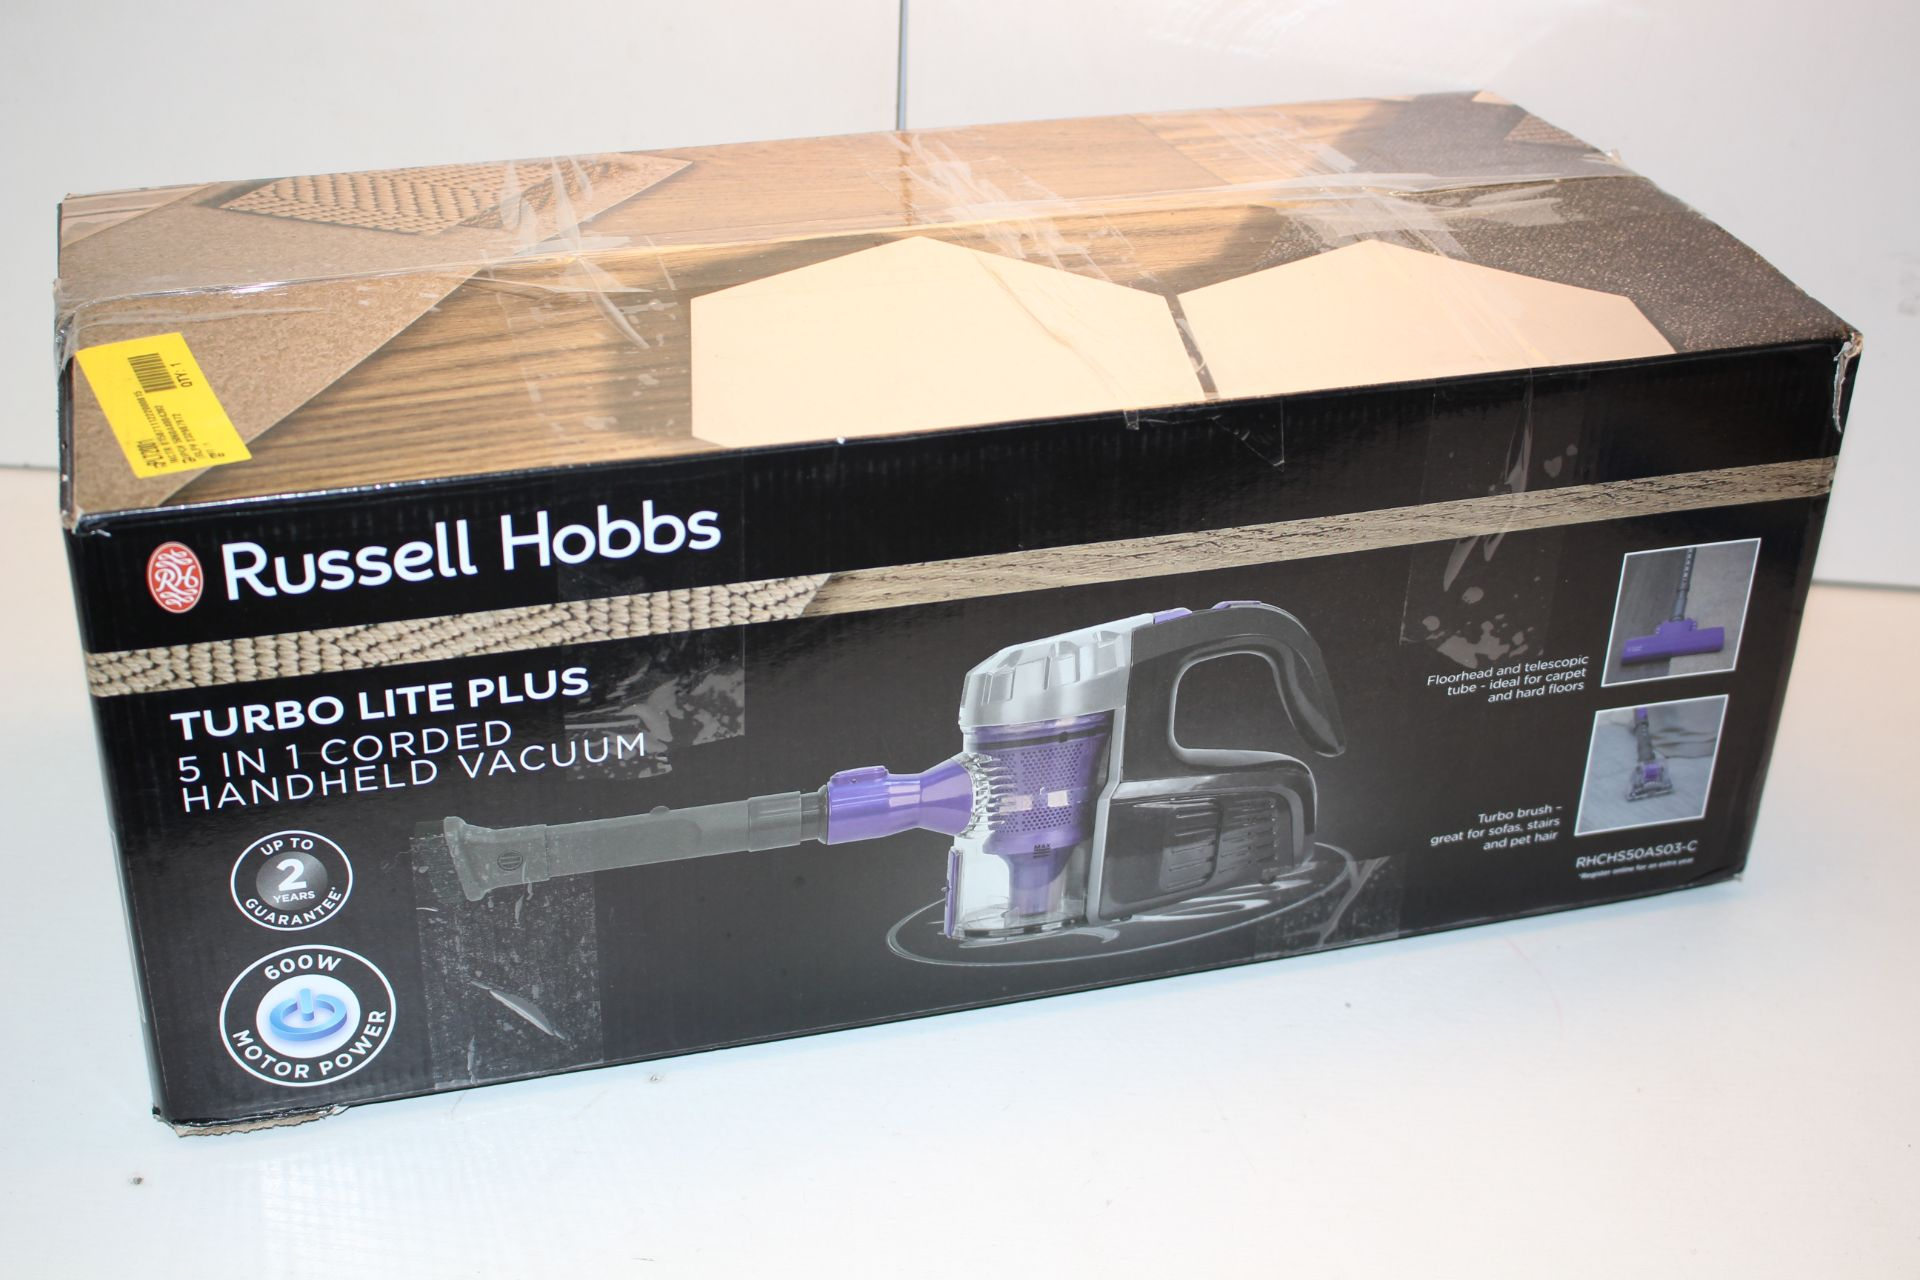 BOXED RUSSELL HOBBS TURBO LITE PLUS 5-IN-1 CORDED HANDHELD VACUUM MODEL: RHCHS50ASO3-C RRP £59.